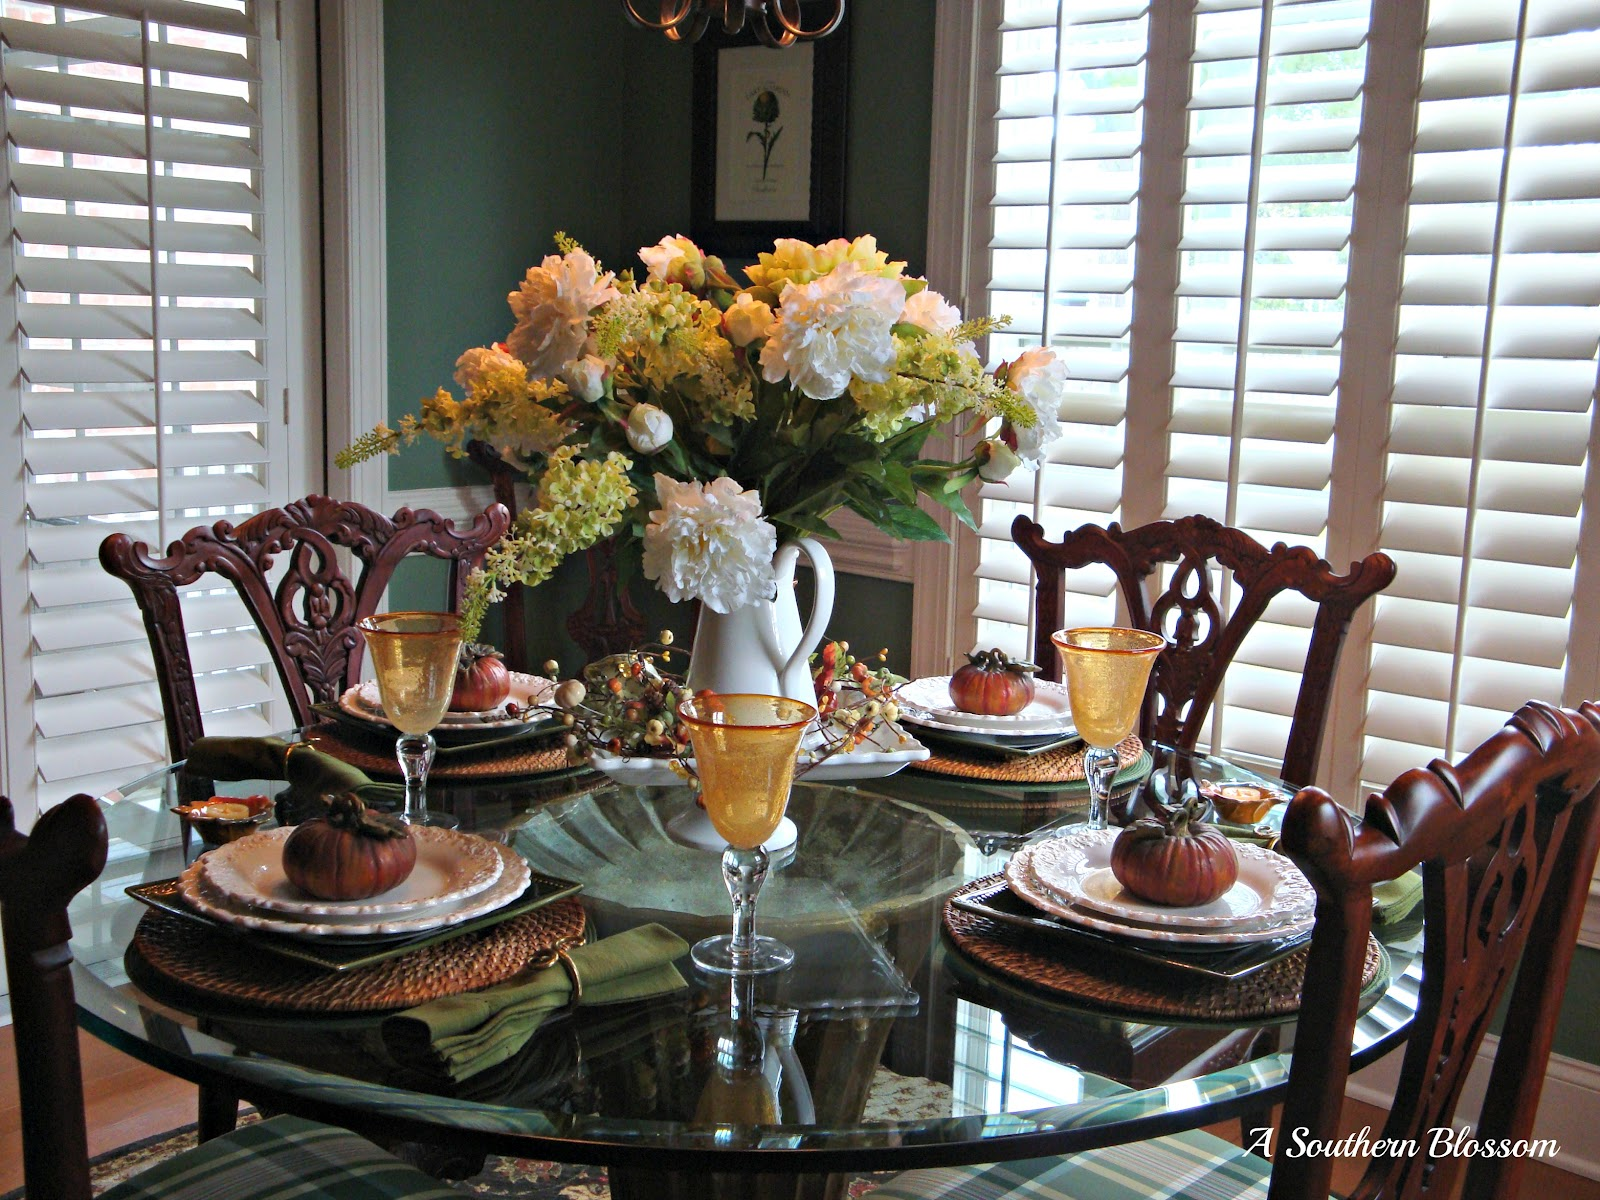 southern blossom tablescapes